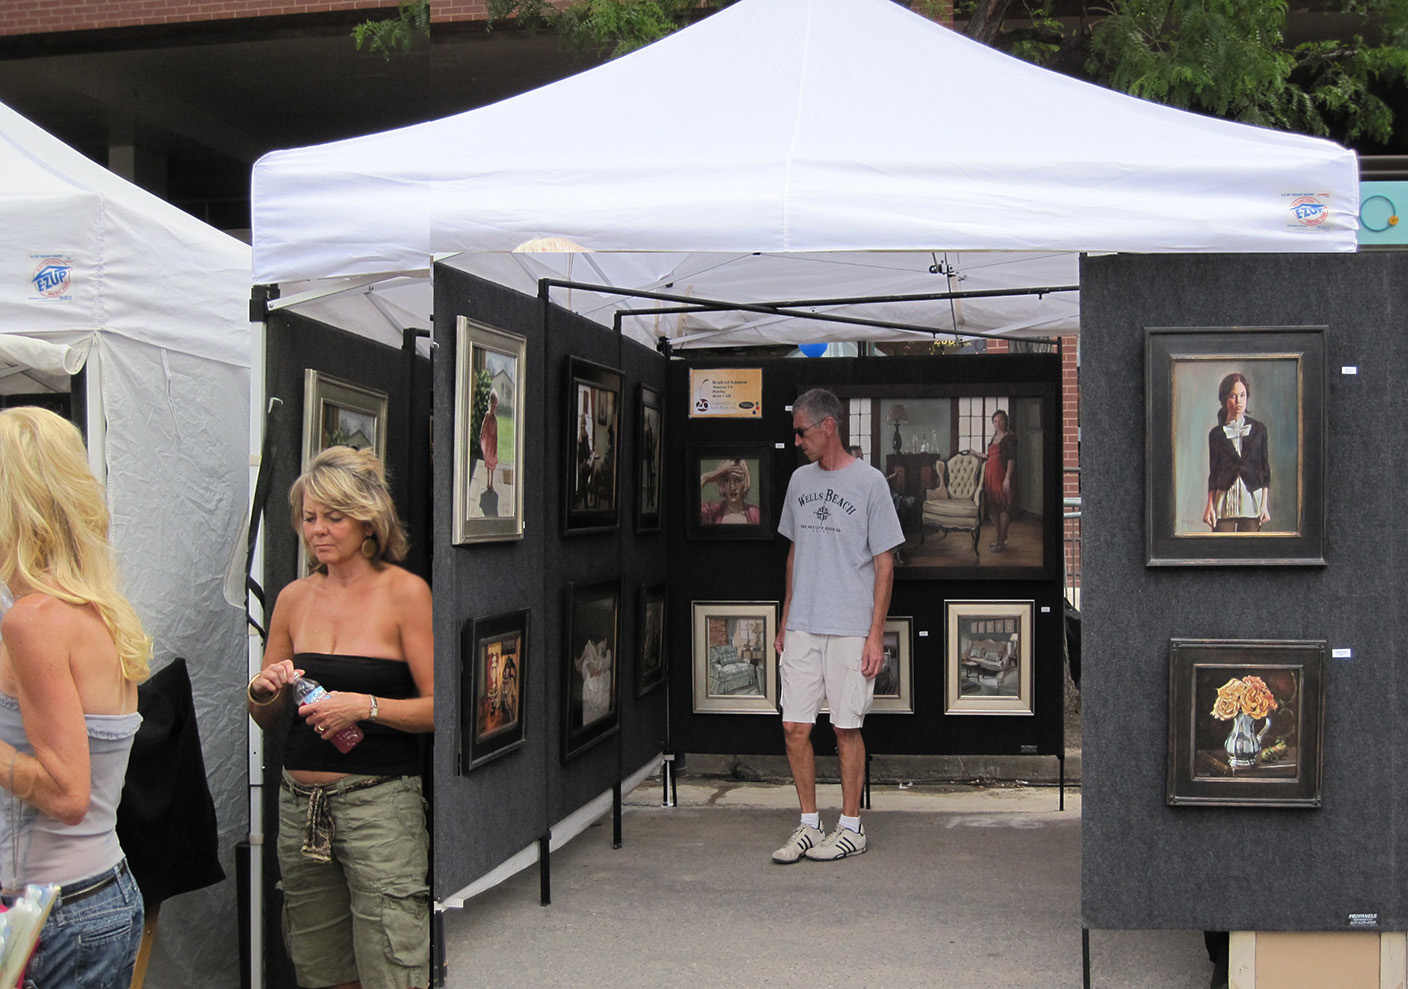 Bradford J. Salamon's booth at CCAF